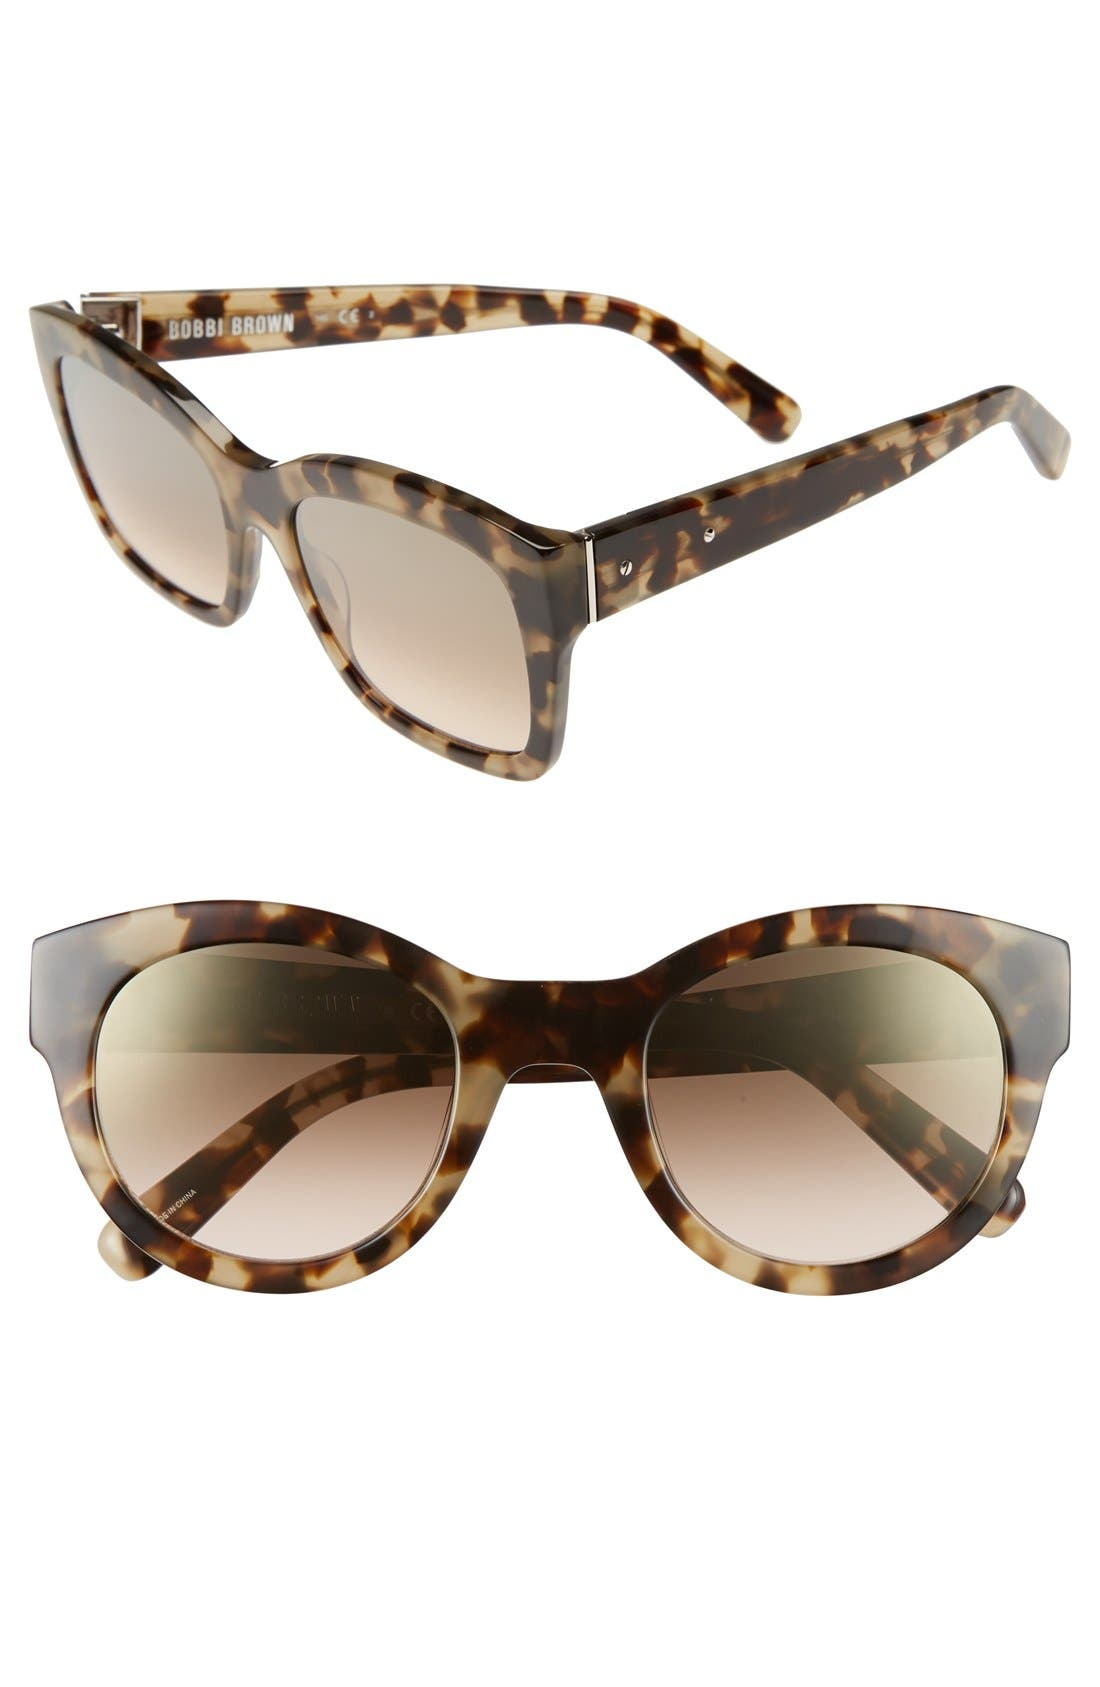 BOBBI BROWN Ava 54mm Sunglasses